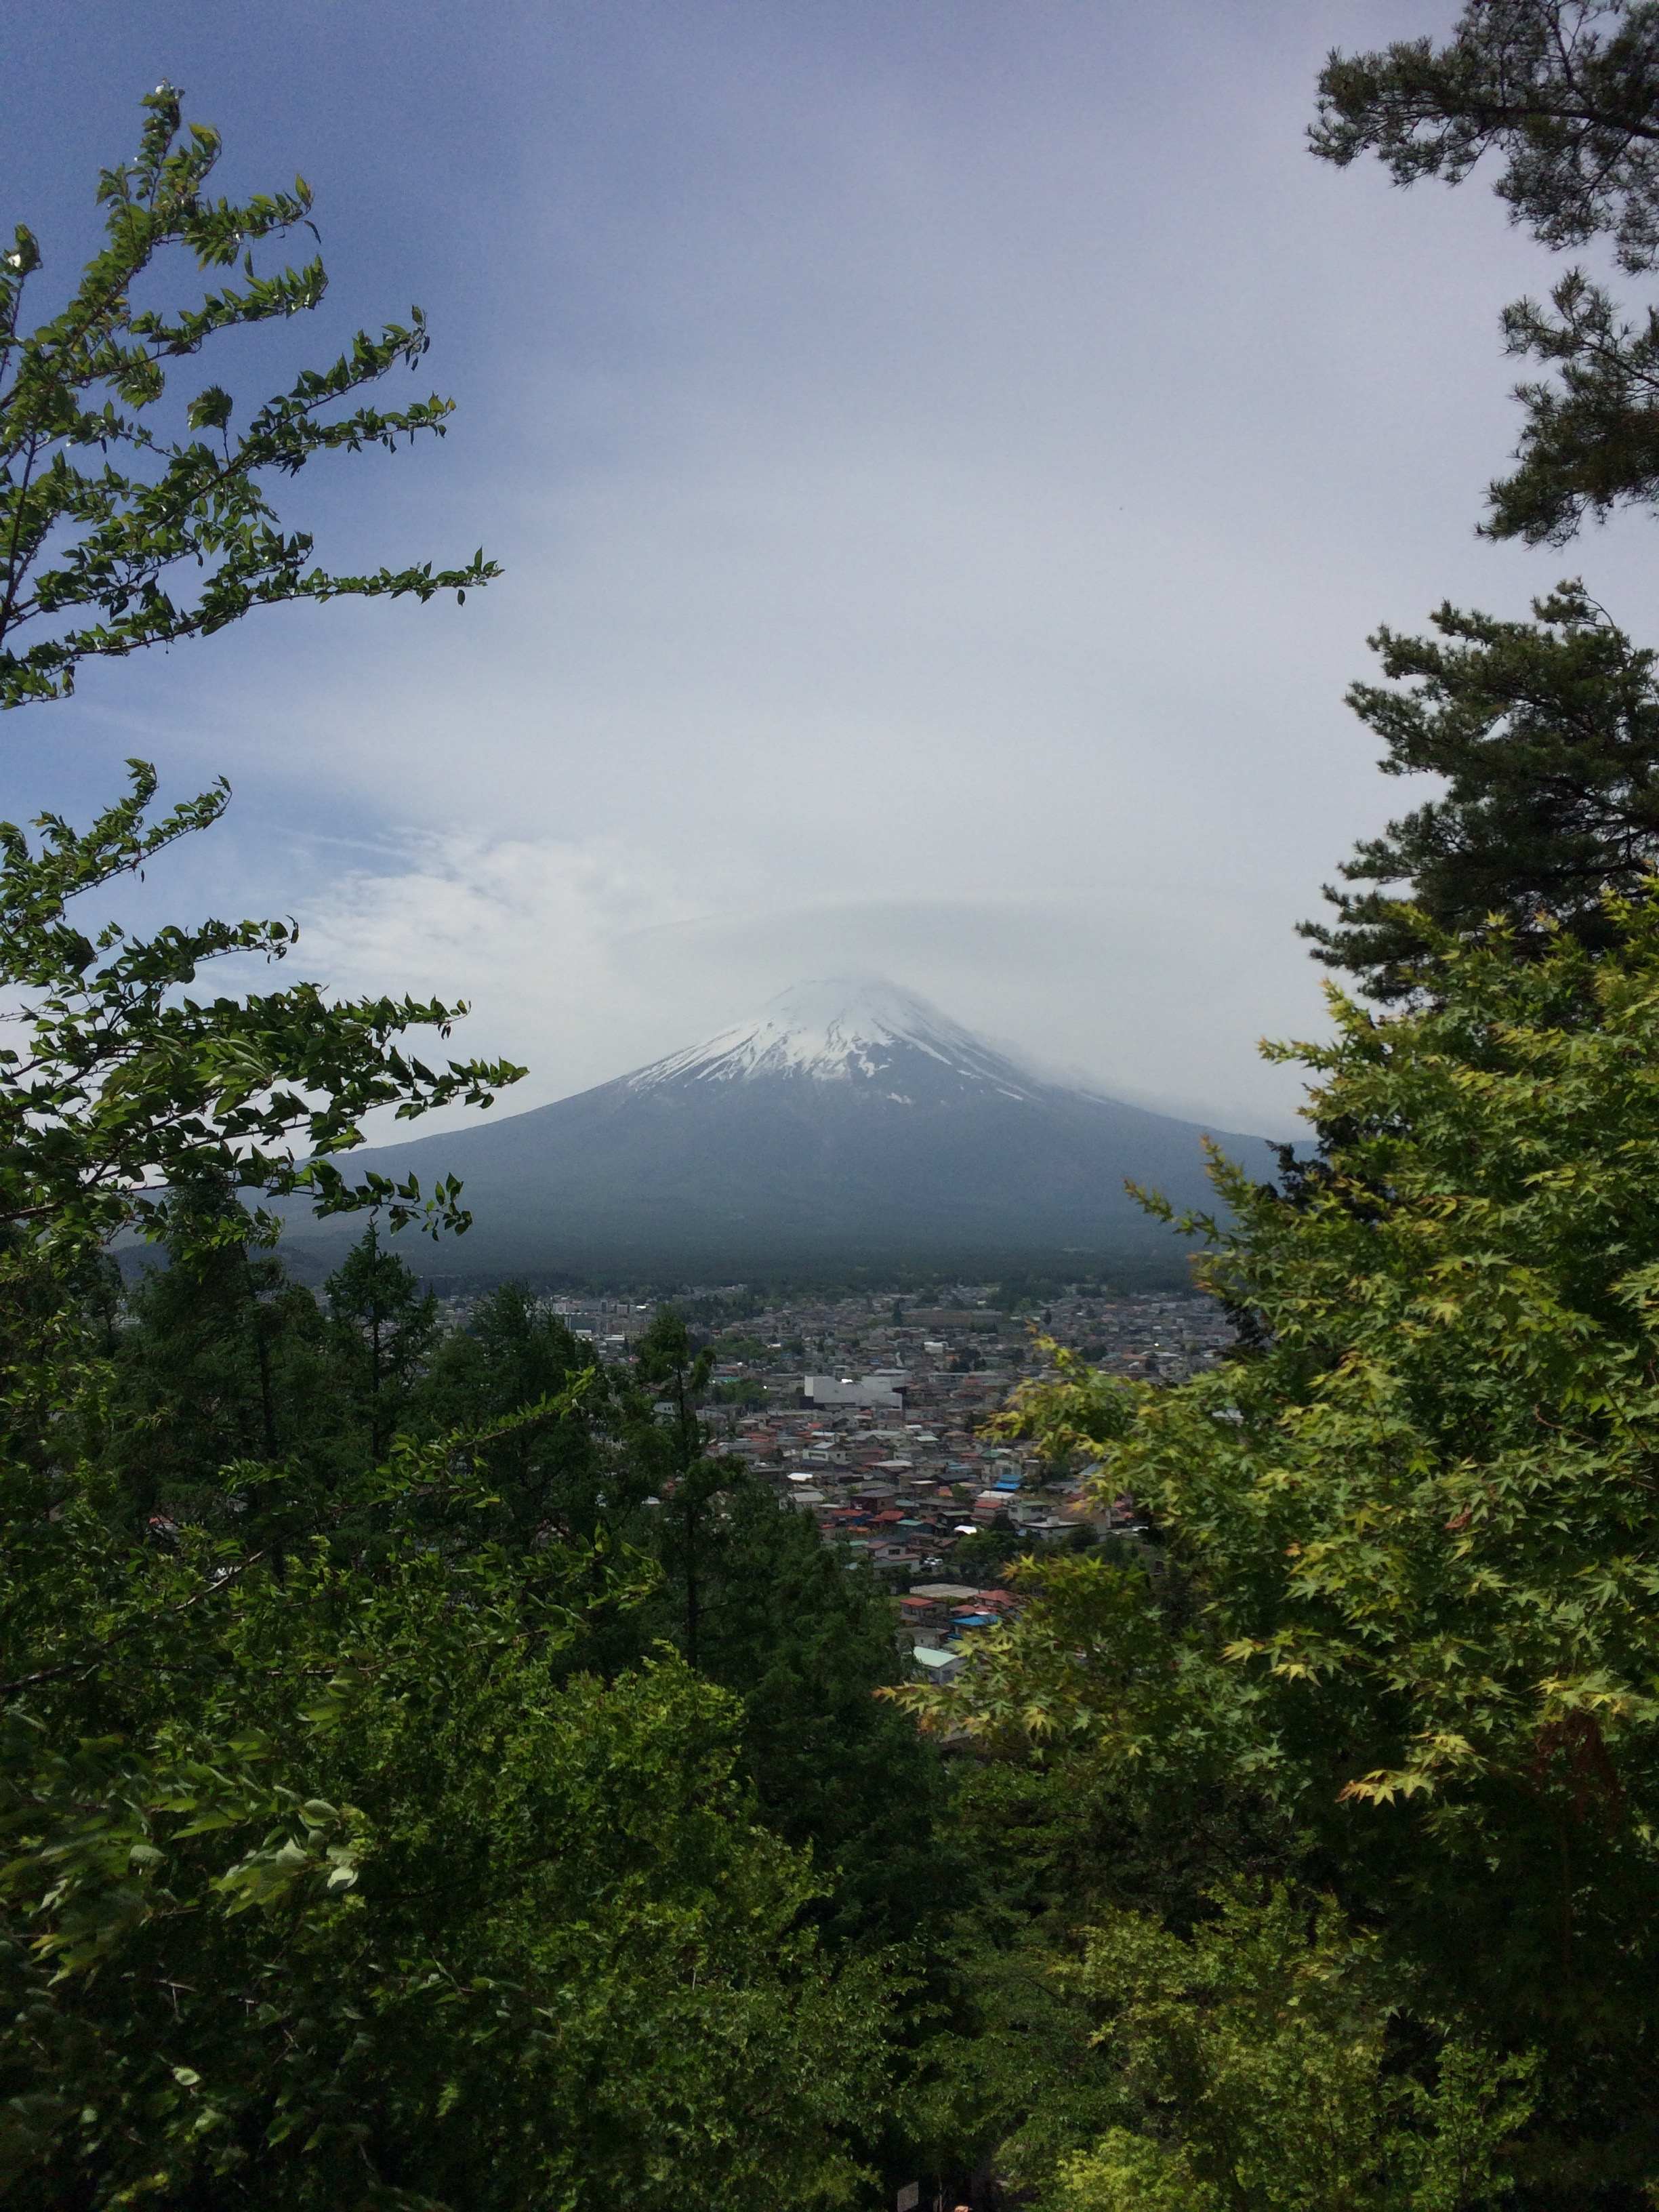 Mount Fuji, Japan's tallest mountain and an active volcano, is a sacred subject of worship and national symbol of beauty.